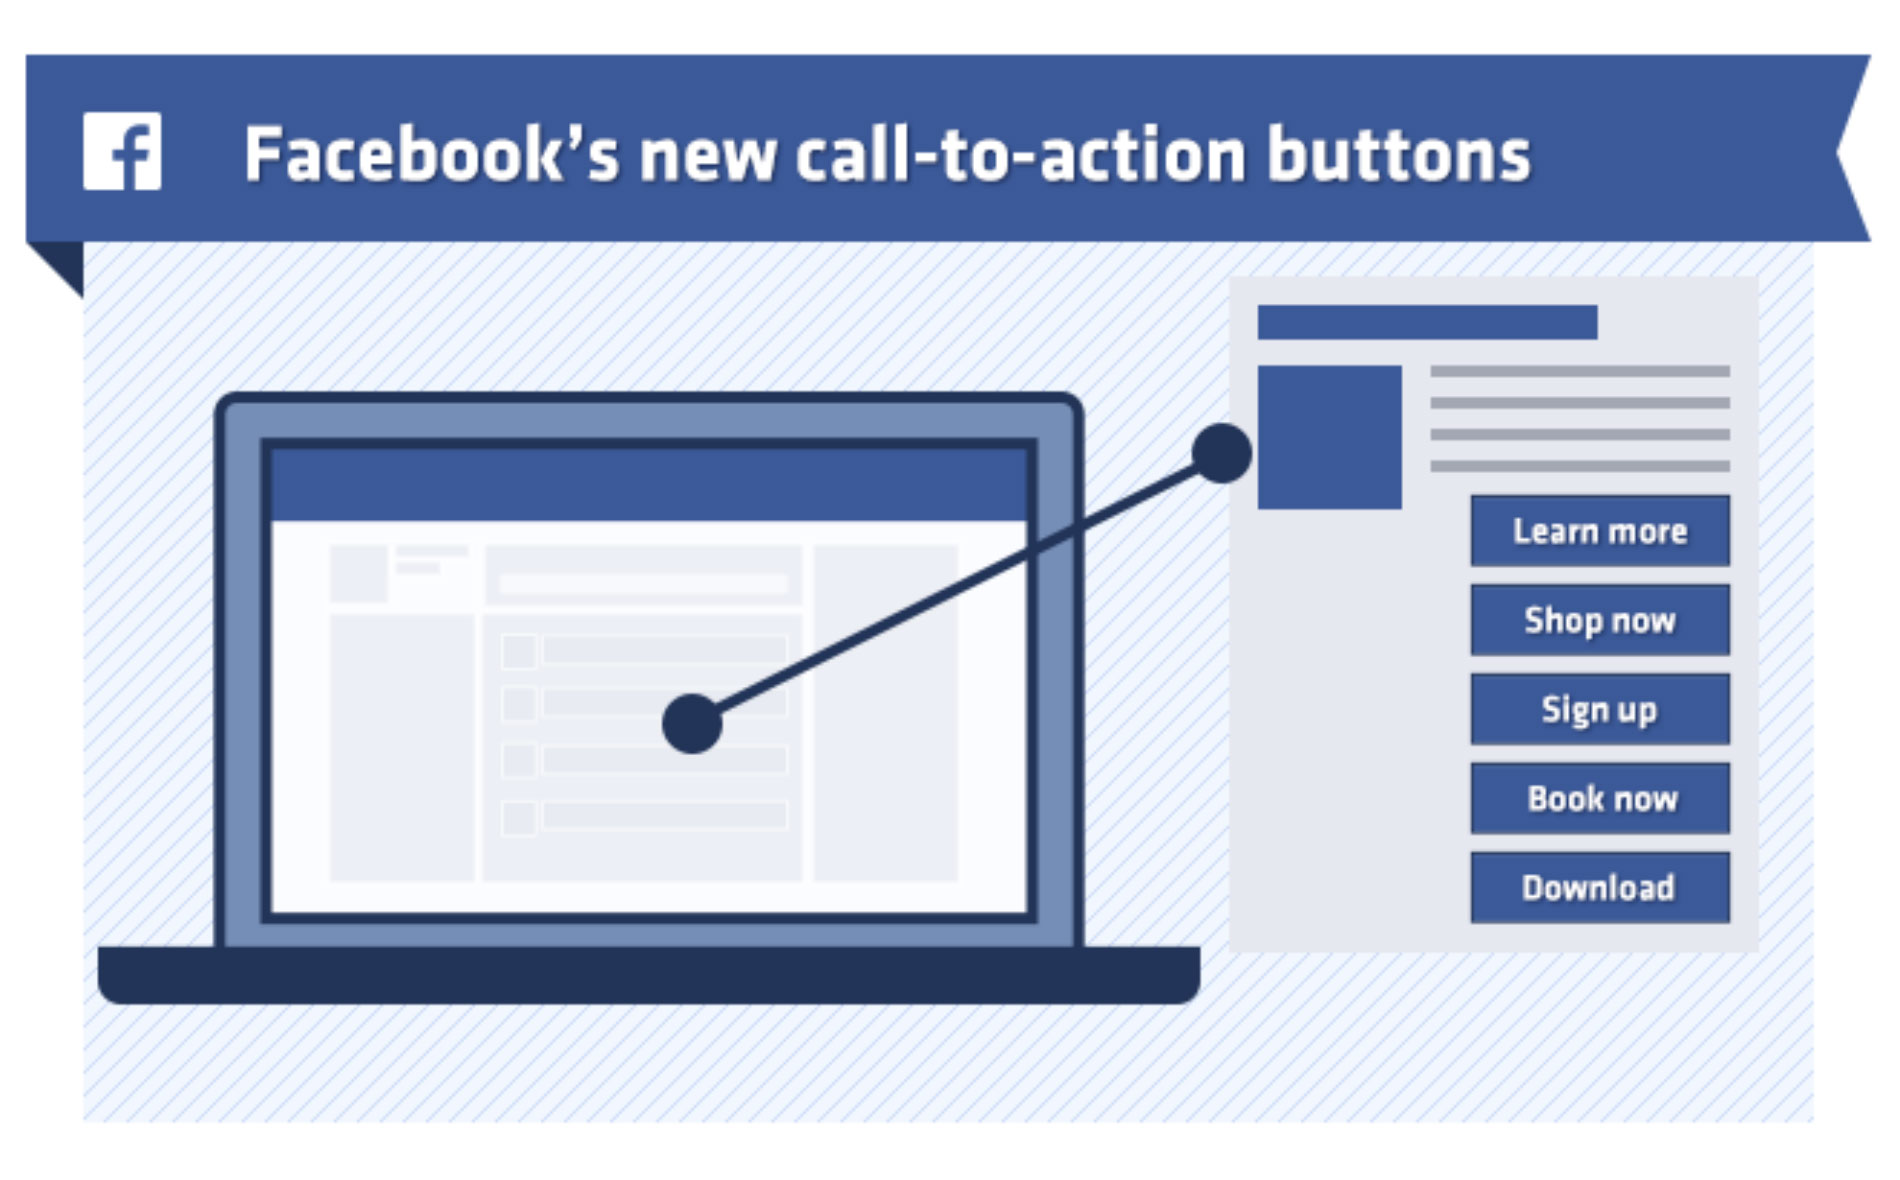 Facebook Fan Page Call To Action